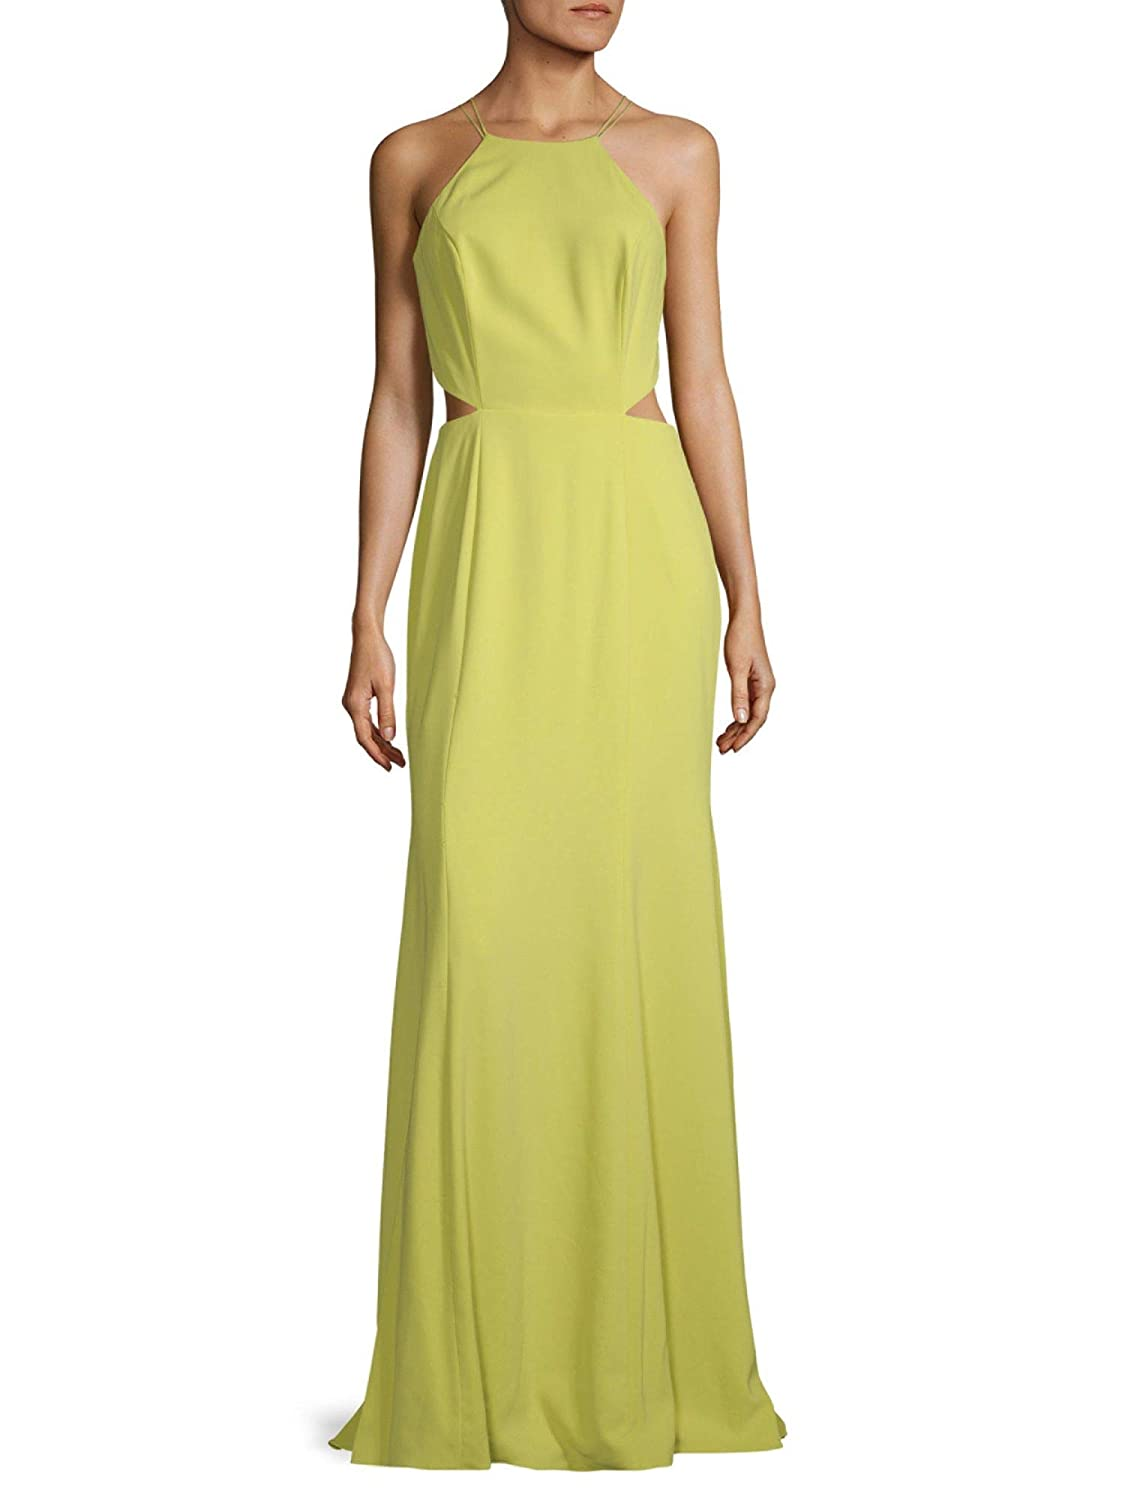 820f036a Marchesa Notte Tassel Cutout Floor Length Evening Gown Dress Chartreuse at  Amazon Women's Clothing store: